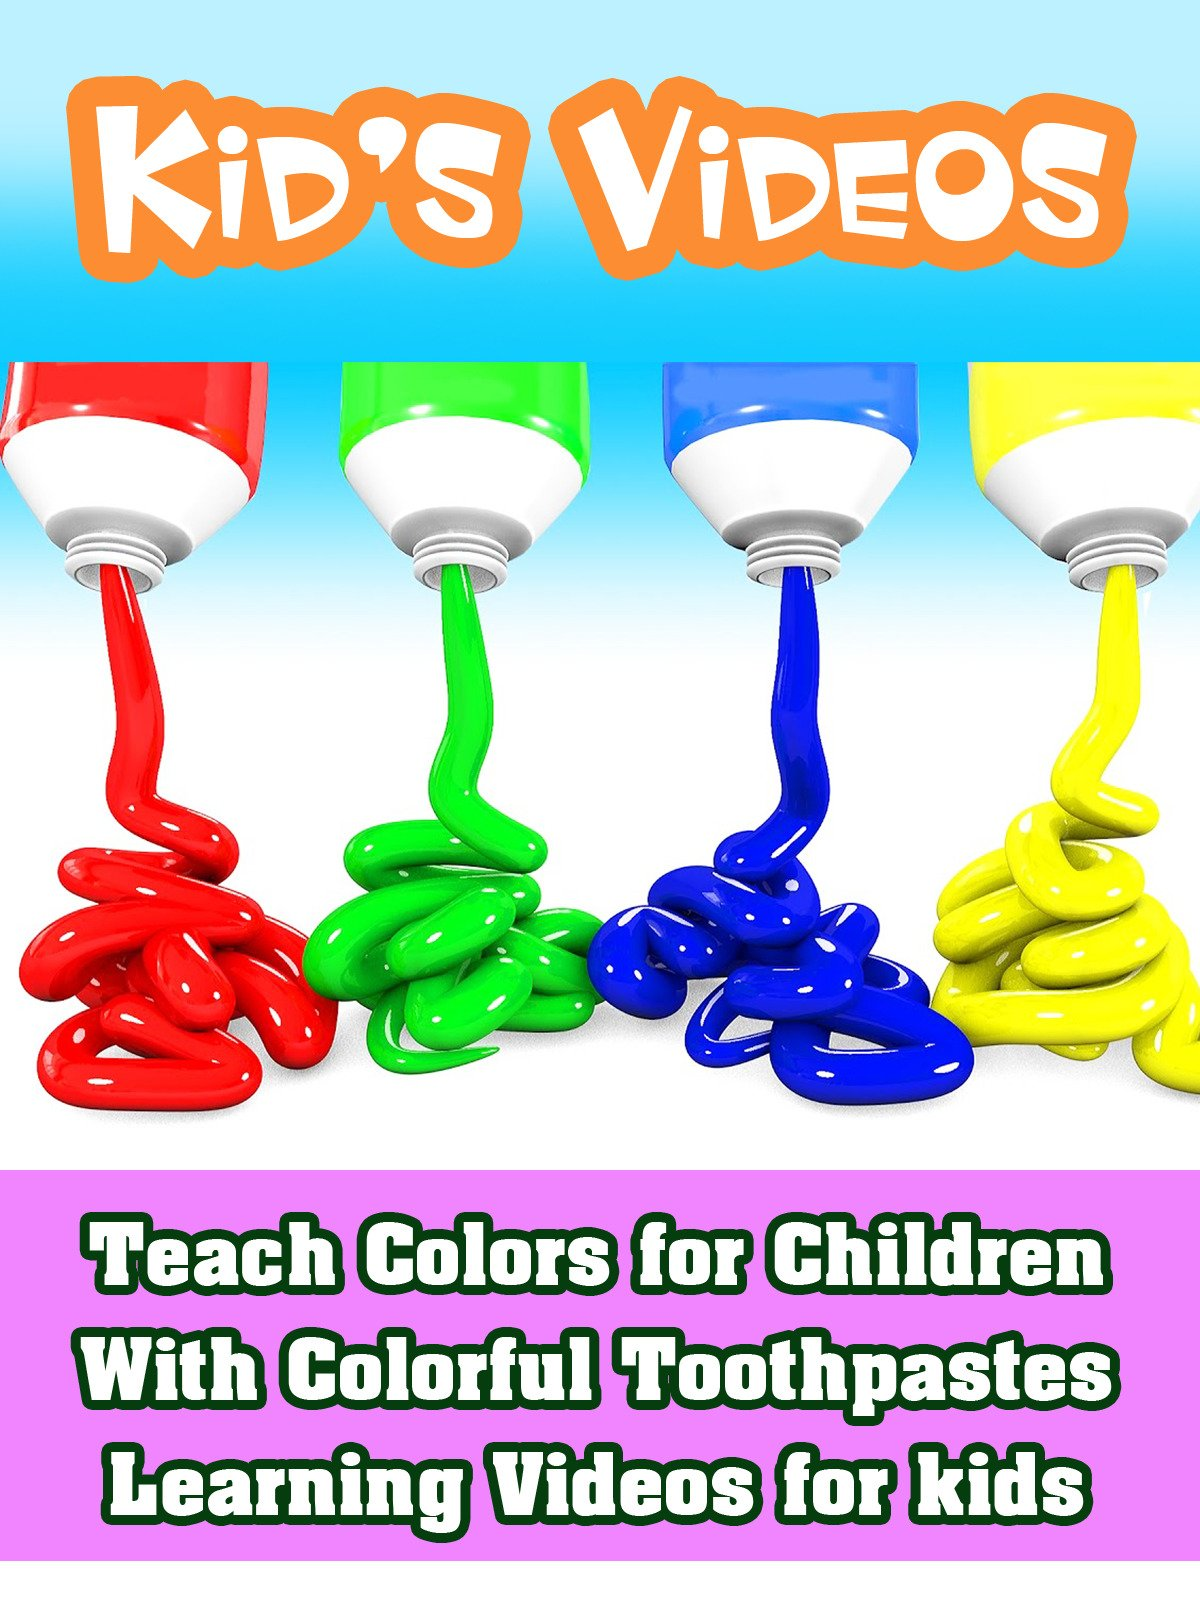 Teach Colors for Children With Colorful Toothpastes Learning Videos for kids